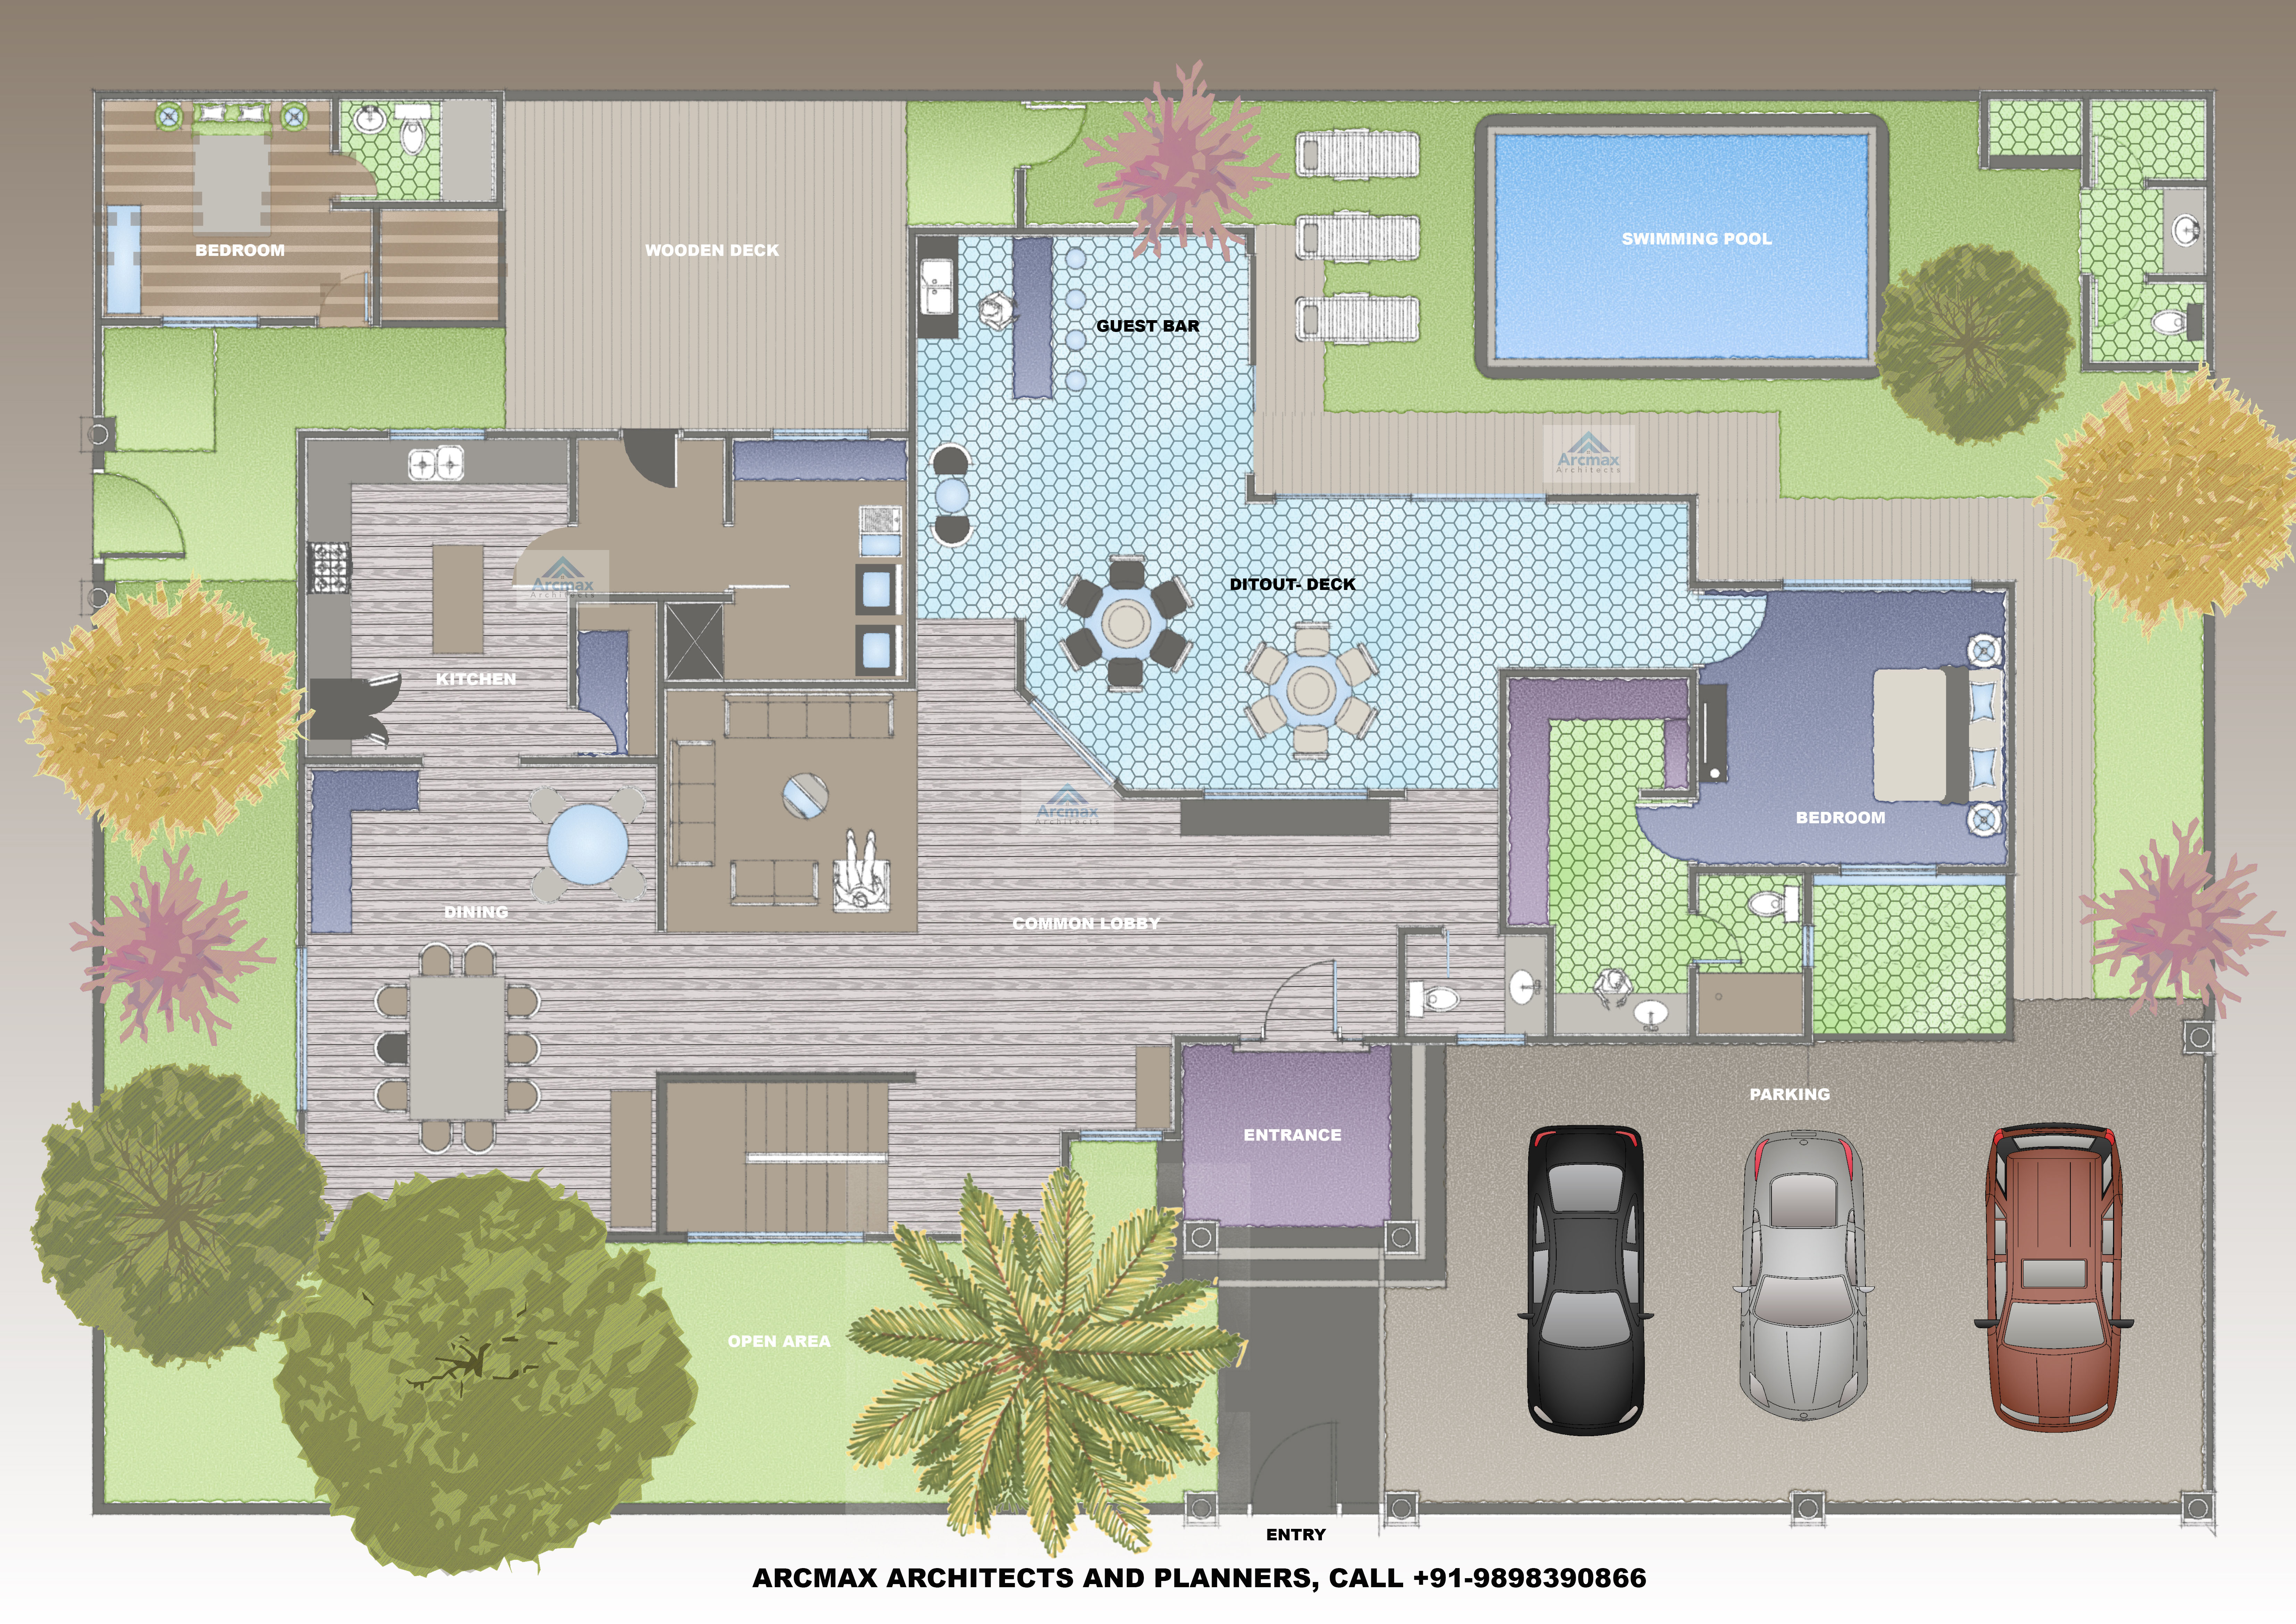 2bhk luxurious villa custom mockup design type 2 anywhere in the world